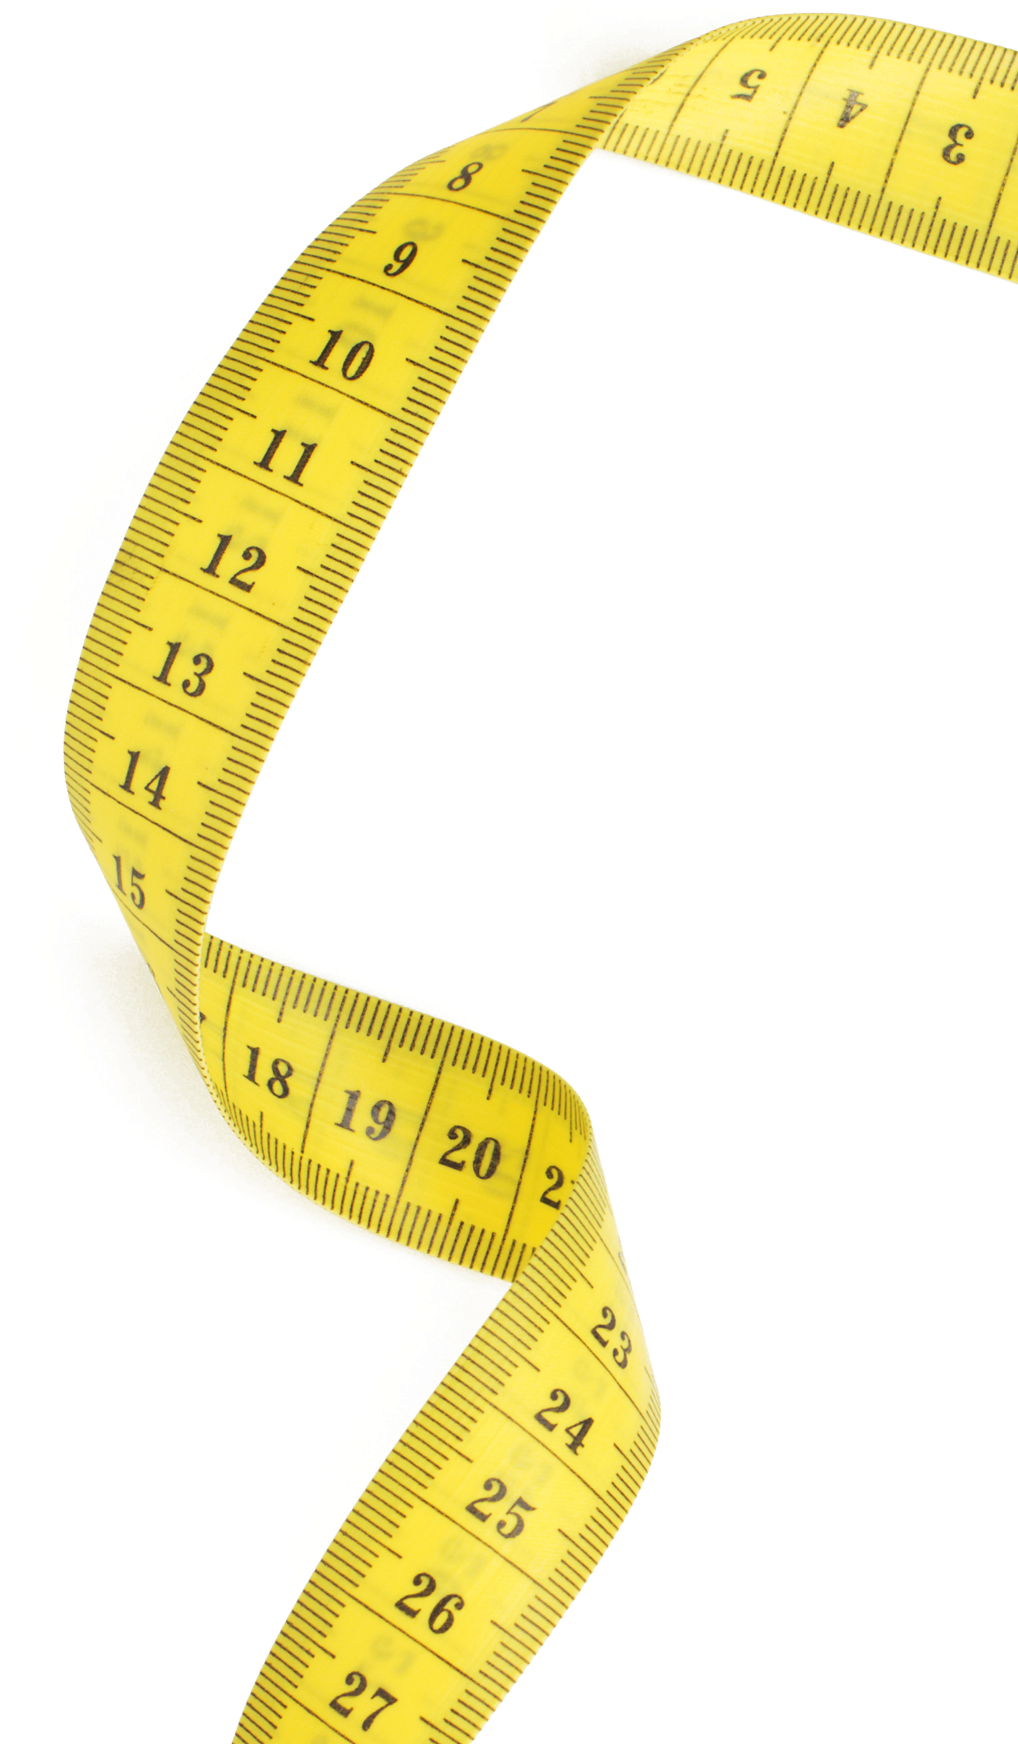 Measuring Tape - West Texas Bariatric At Swat Surgical